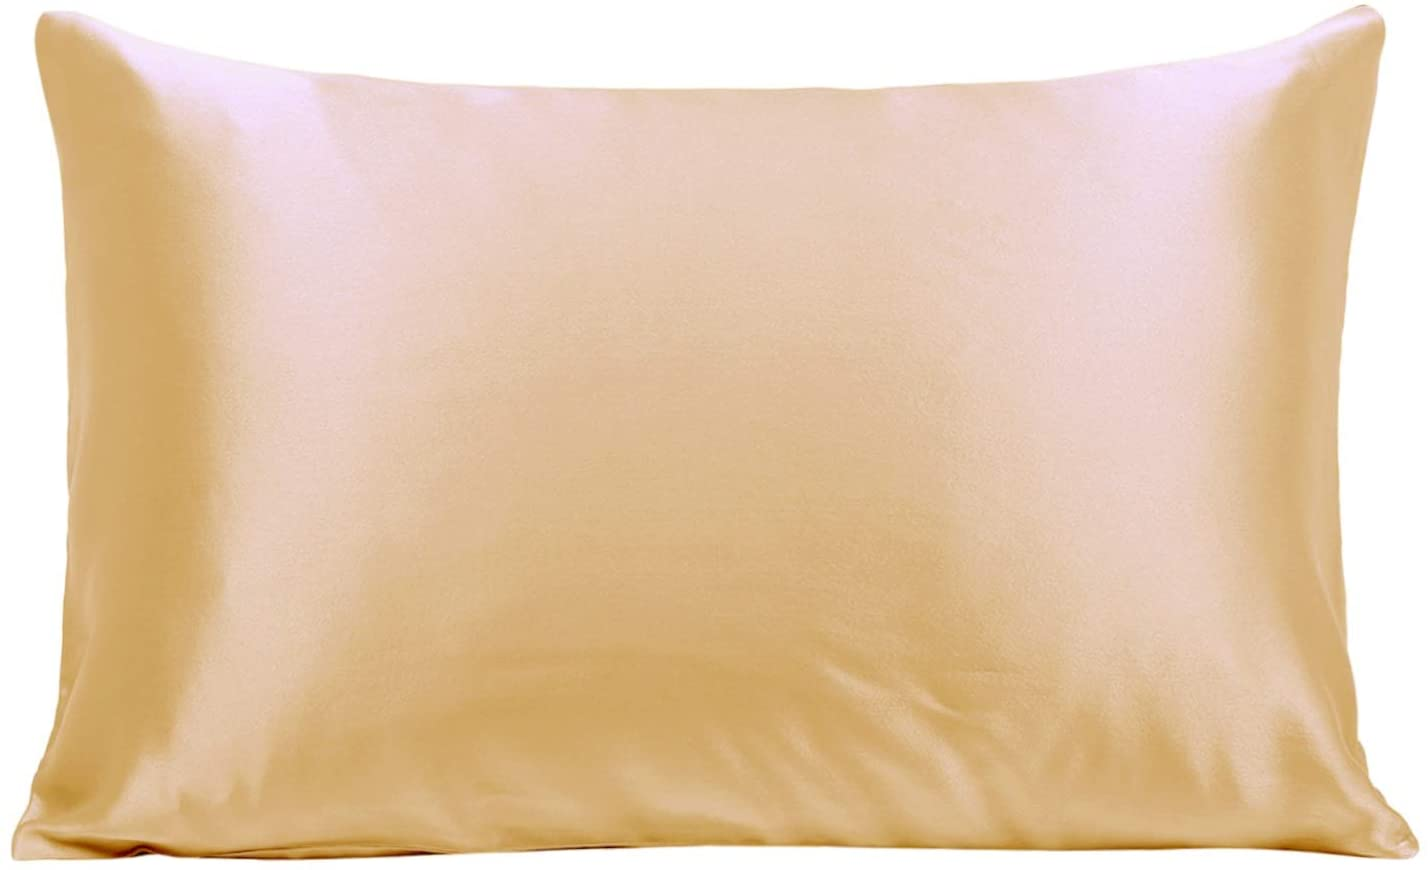 Ravmix Silk Pillowcase Standard Size for Hair and Skin Both Sides 21 Momme 600 Thread Count Hypoallergenic 100% Mulberry Silk Pillow Case with Hidden Zipper, 20×26inches, Champagne Gold